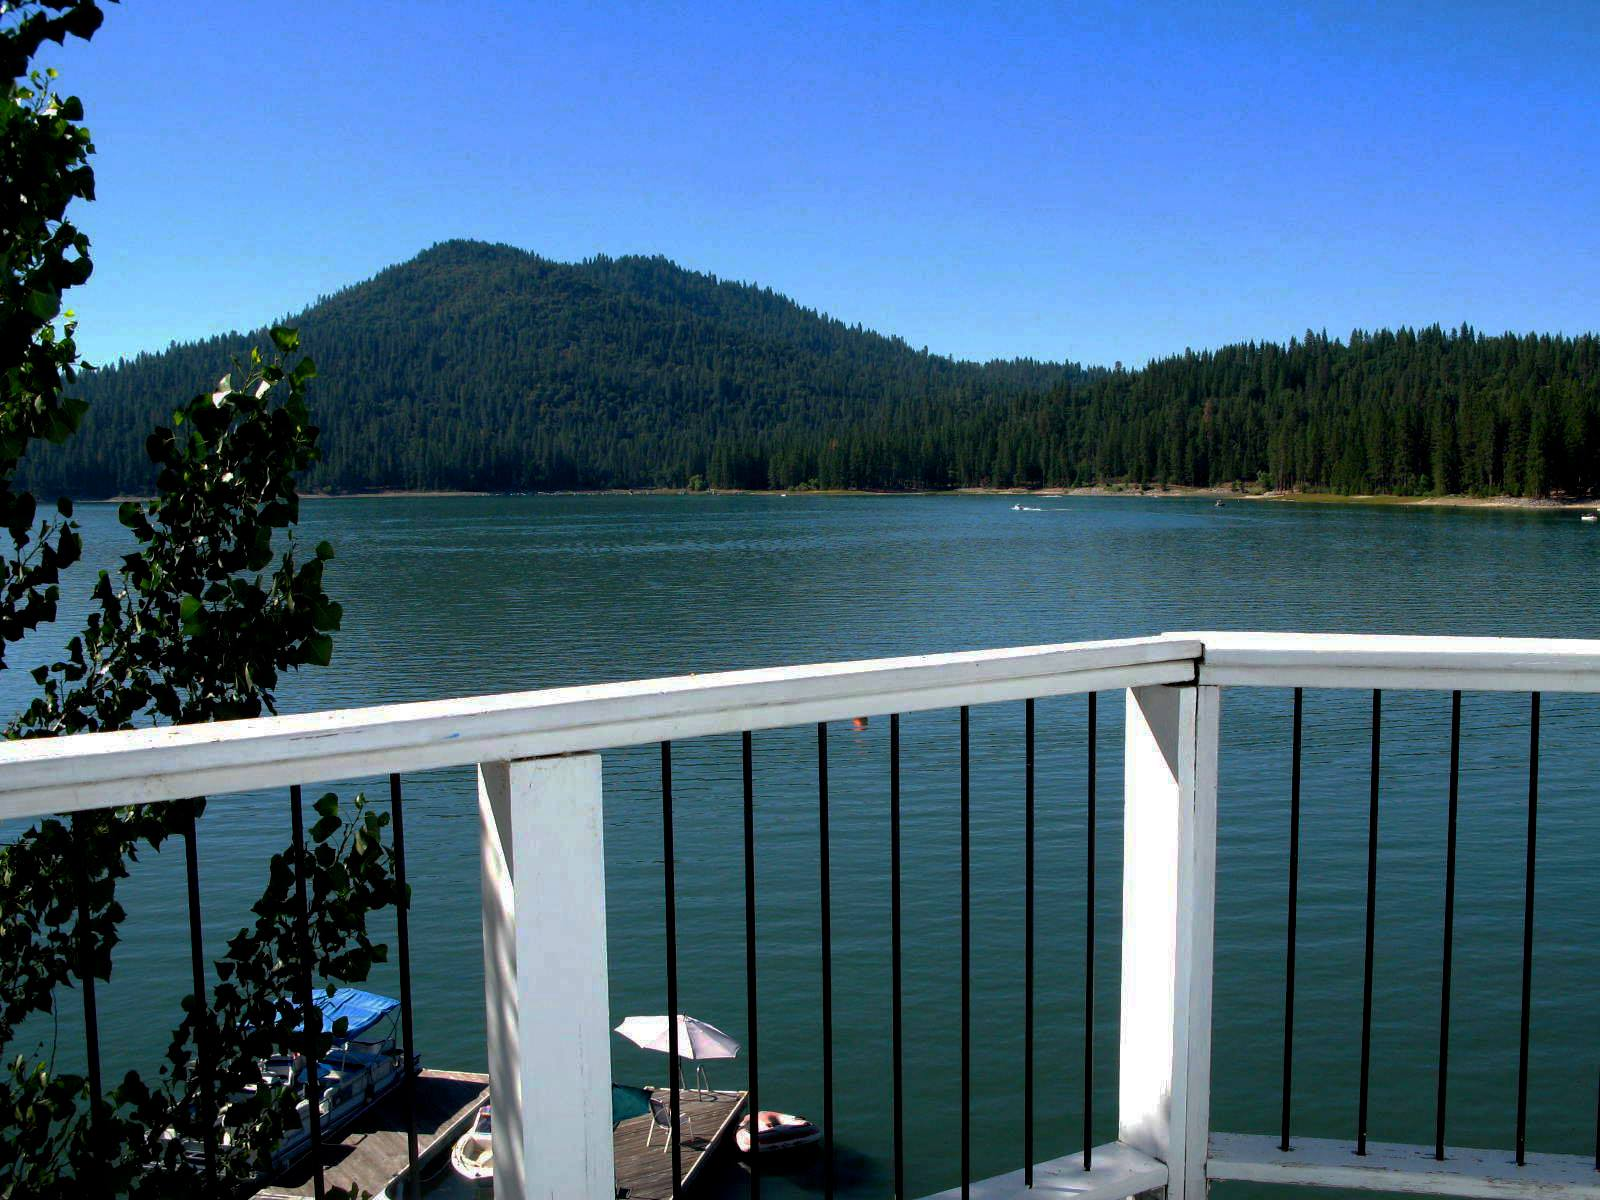 Bass Lake Home Rentals Deck View of Bass Lake in the Yosemite area of California